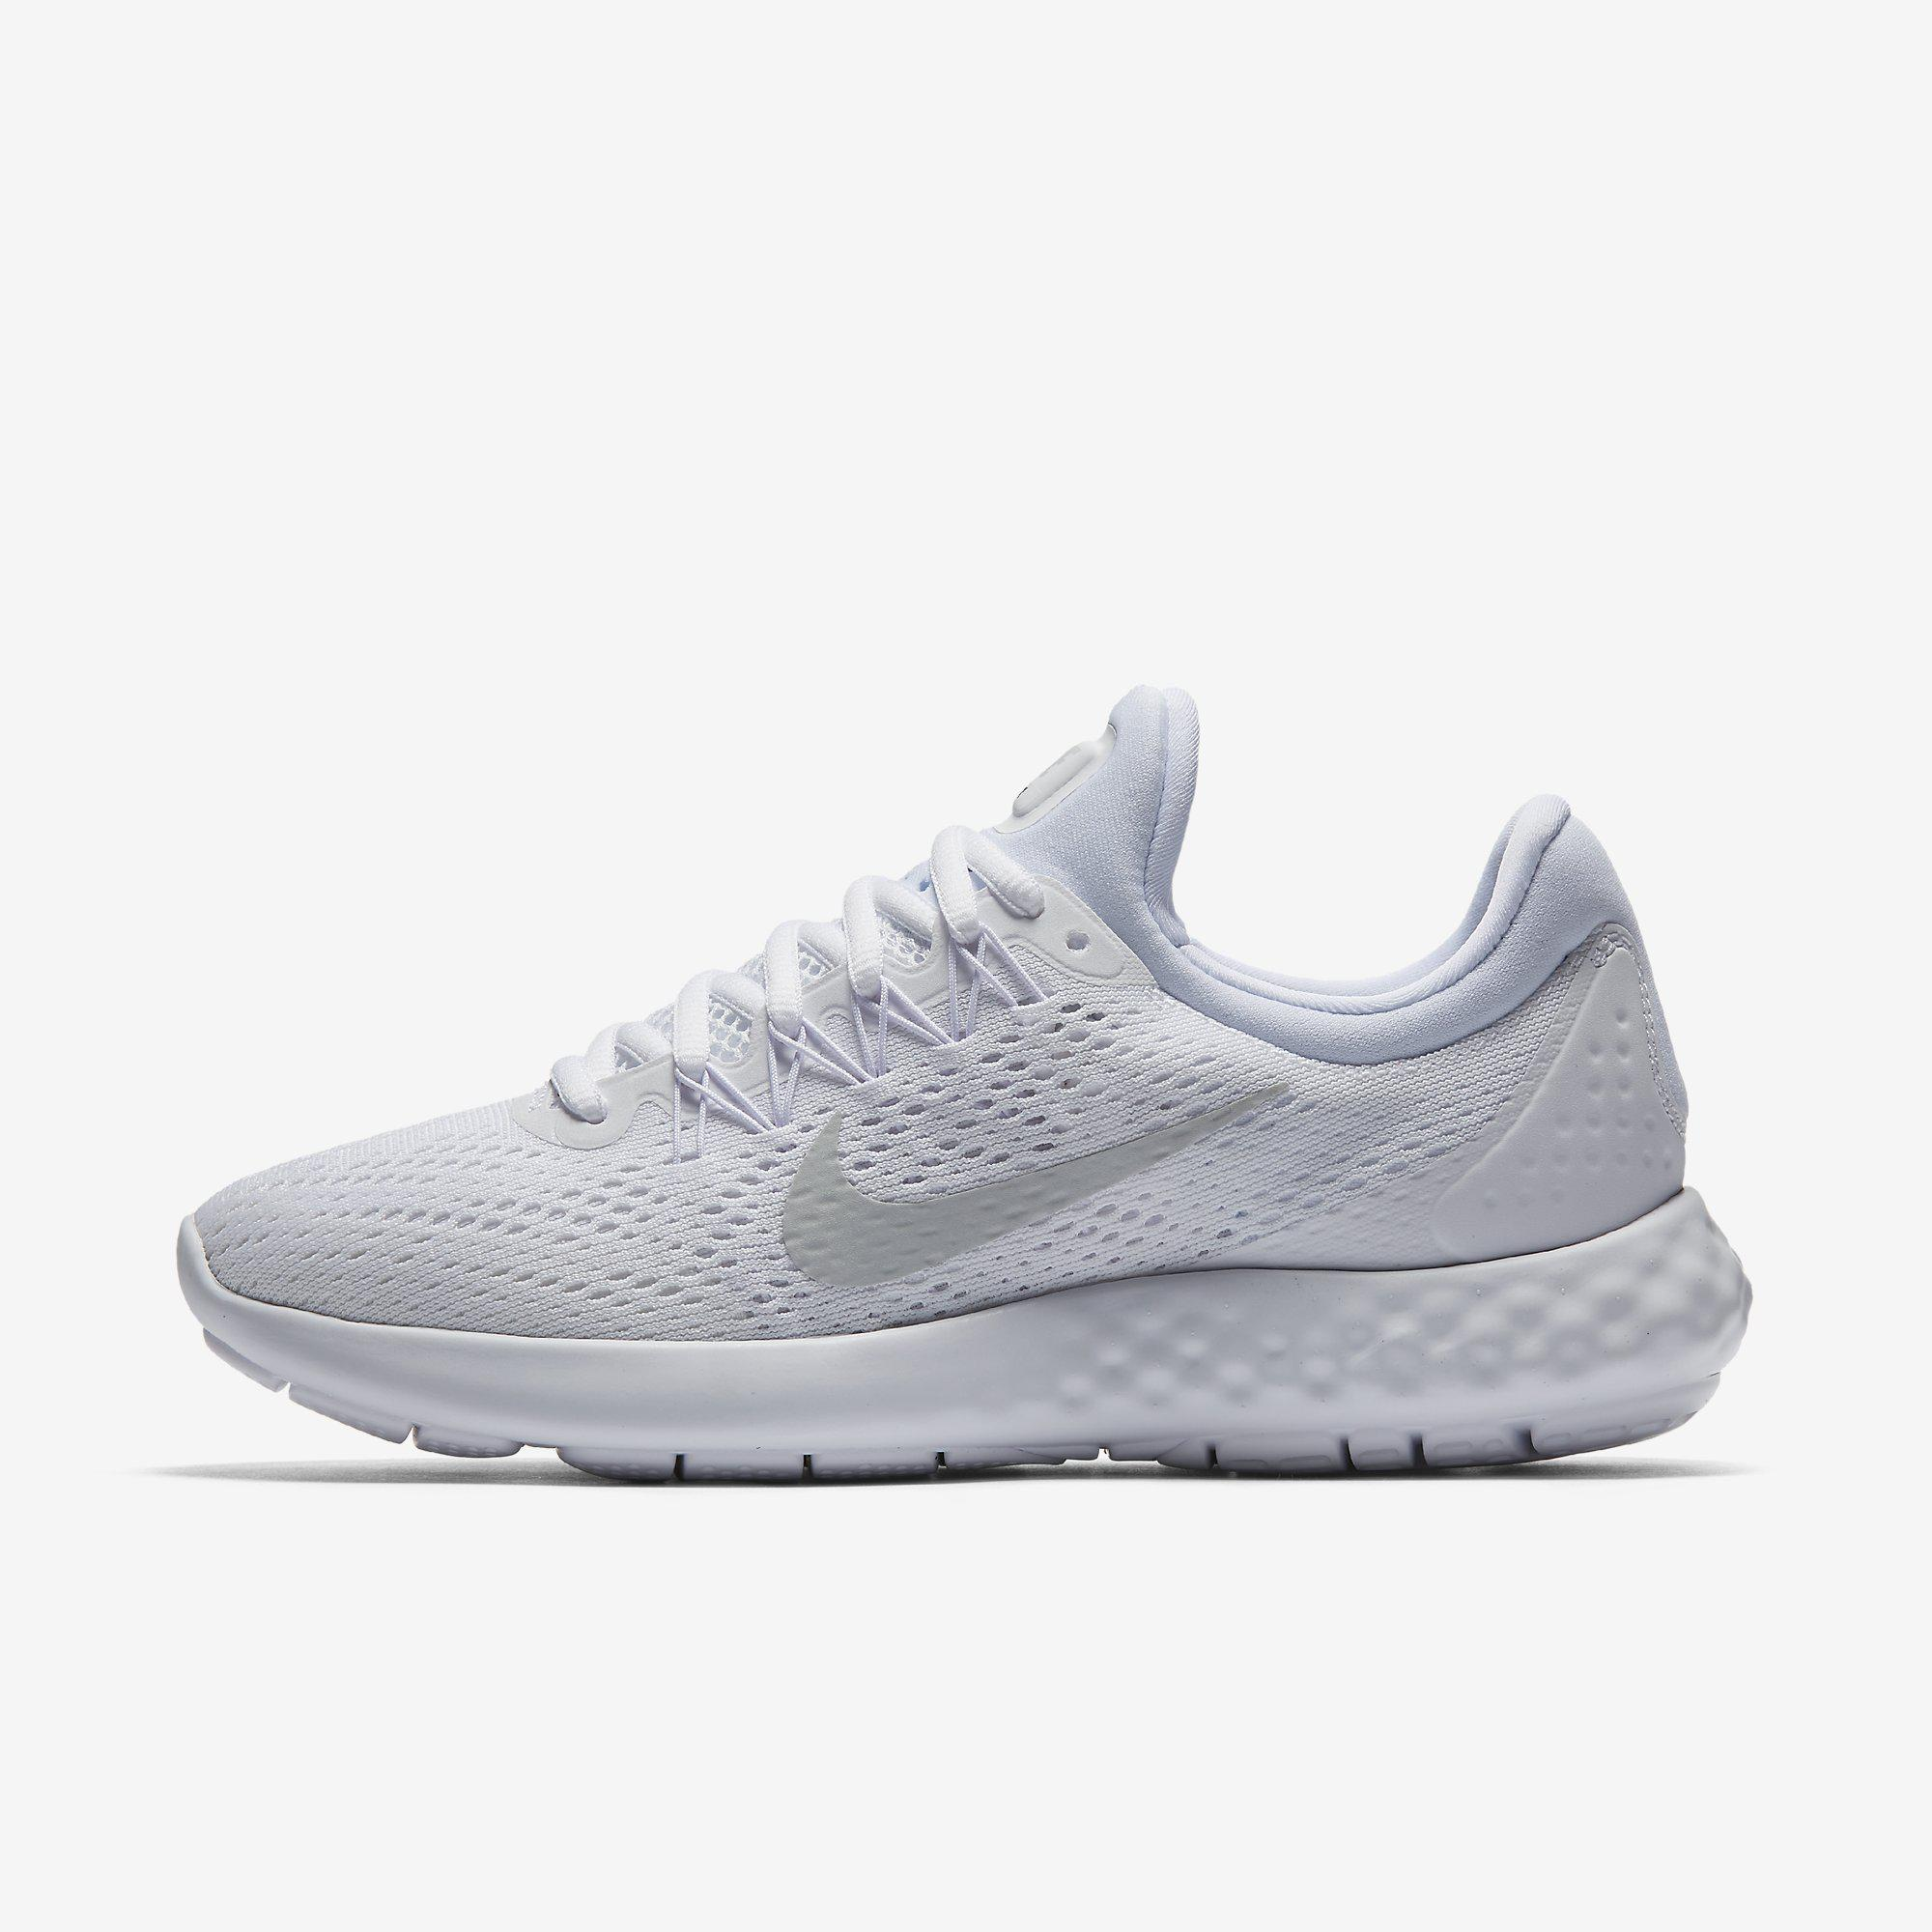 9841c2b42d65b Nike Womens Lunar Skyelux Running Shoes - White - Tennisnuts.com